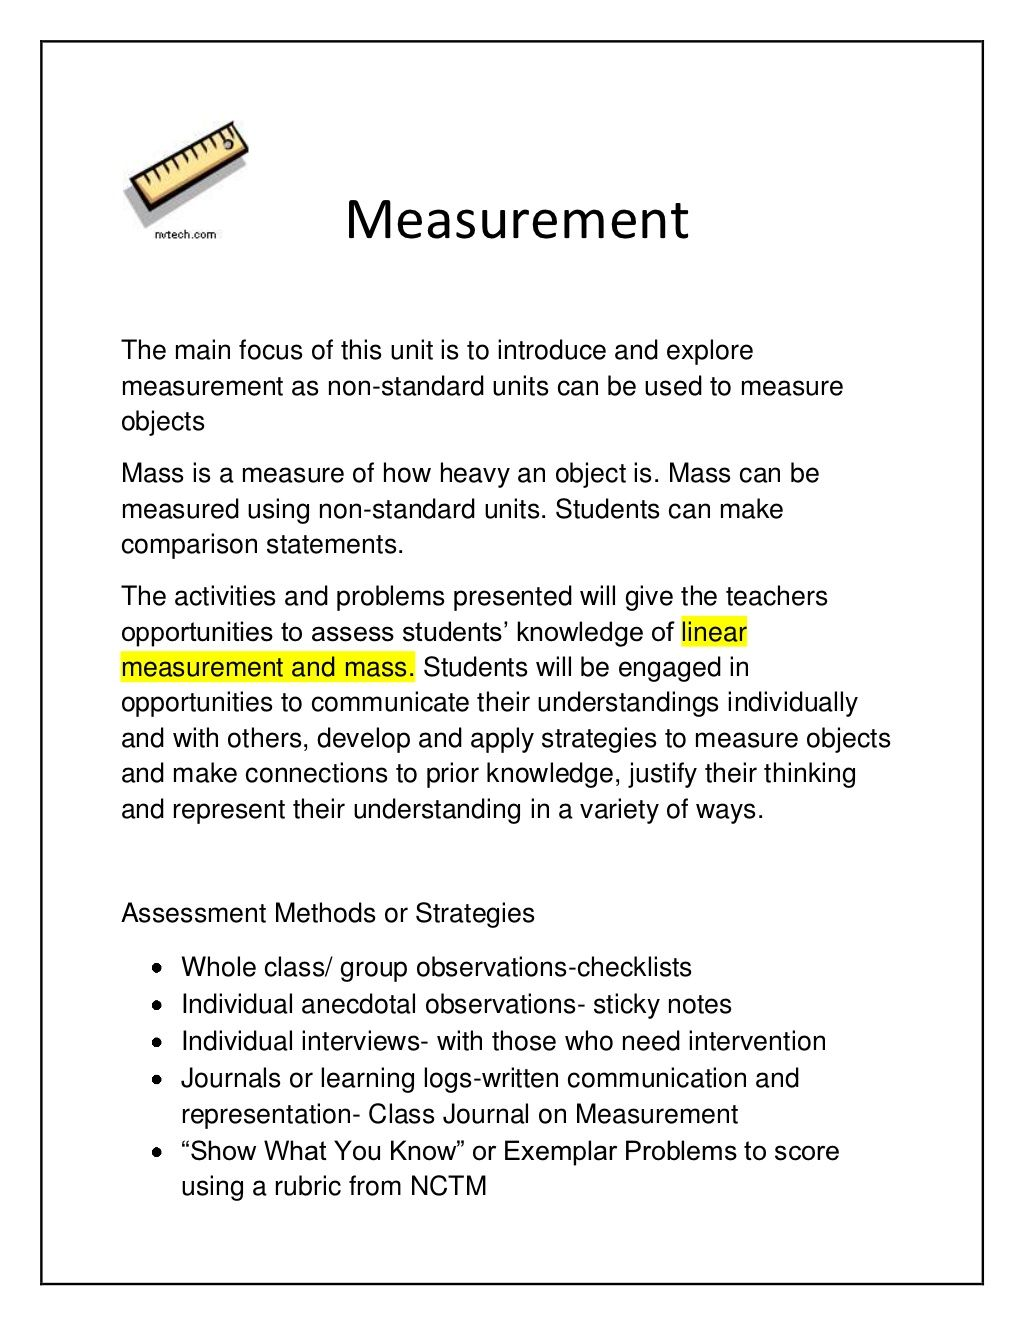 Linear Measurement Lessons By Susan Muir Via Slideshare